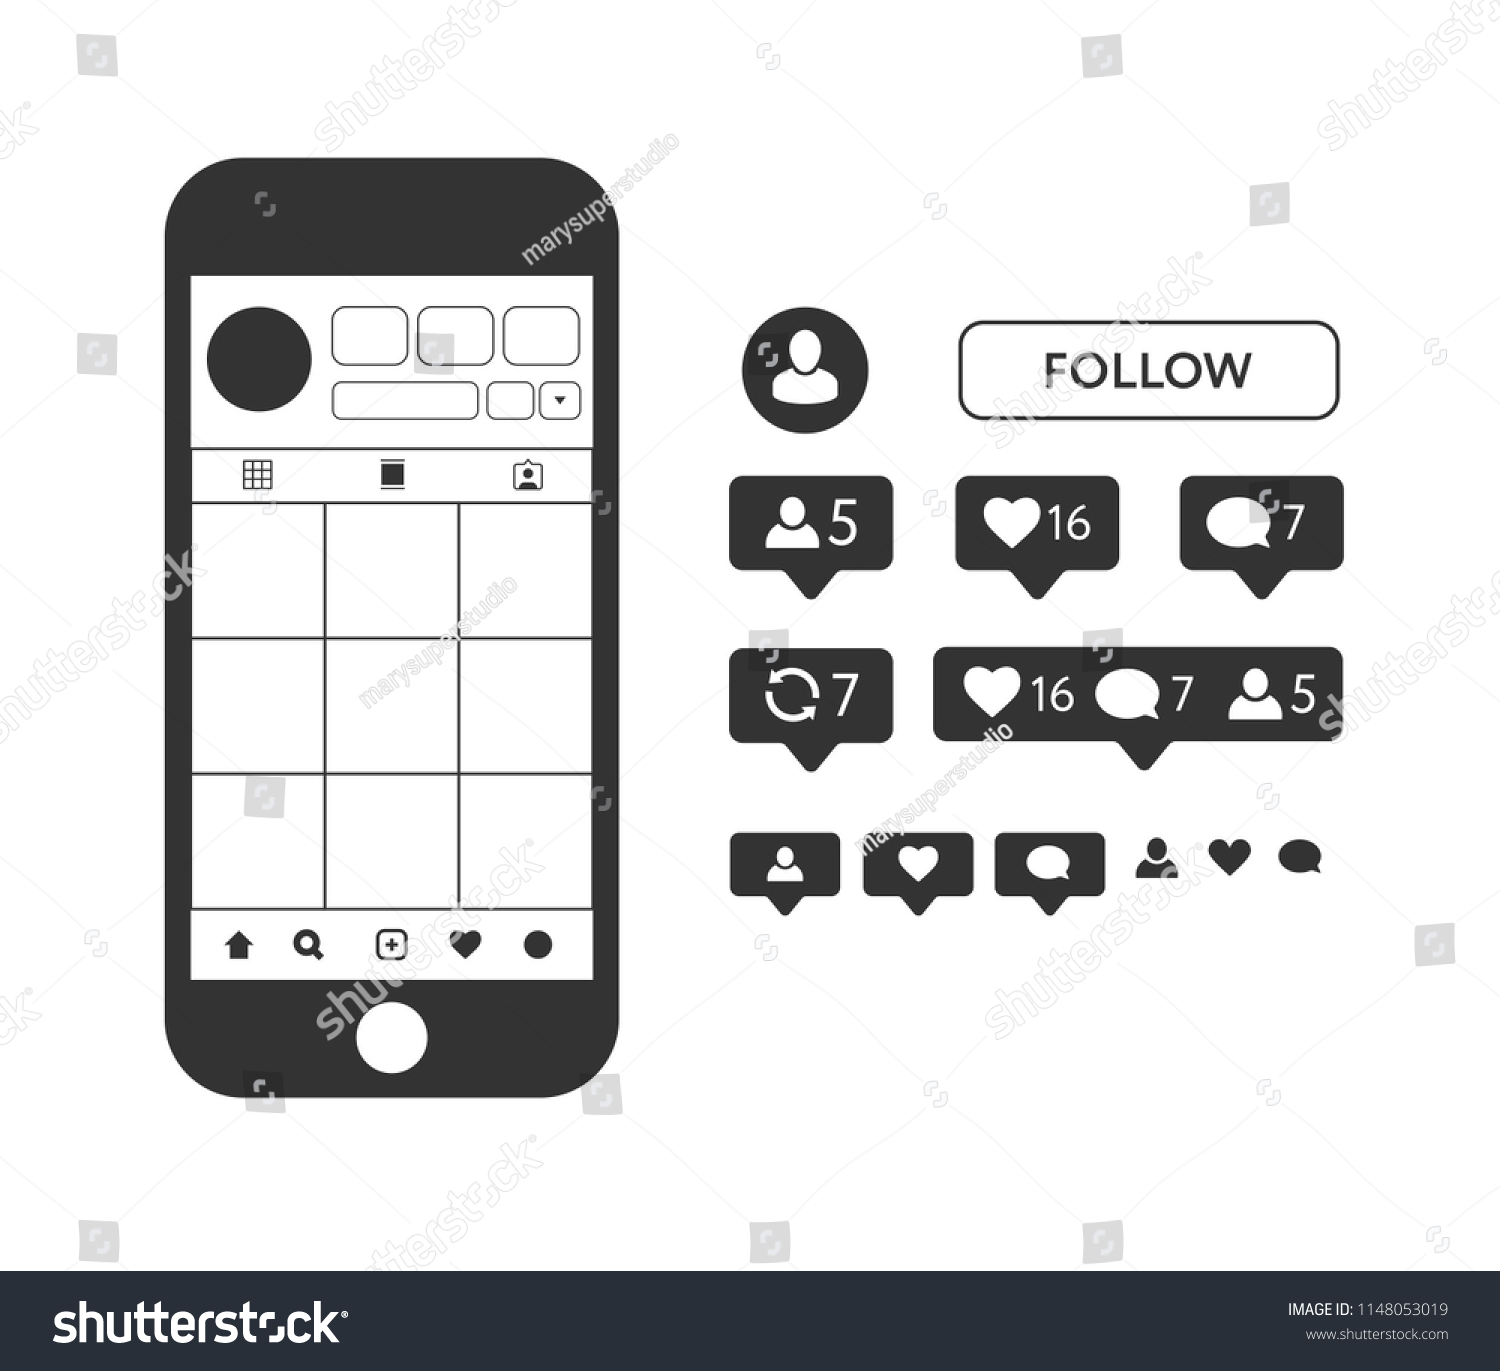 Instagram Template Mock Up Like Symbol Stock Vector Royalty Free